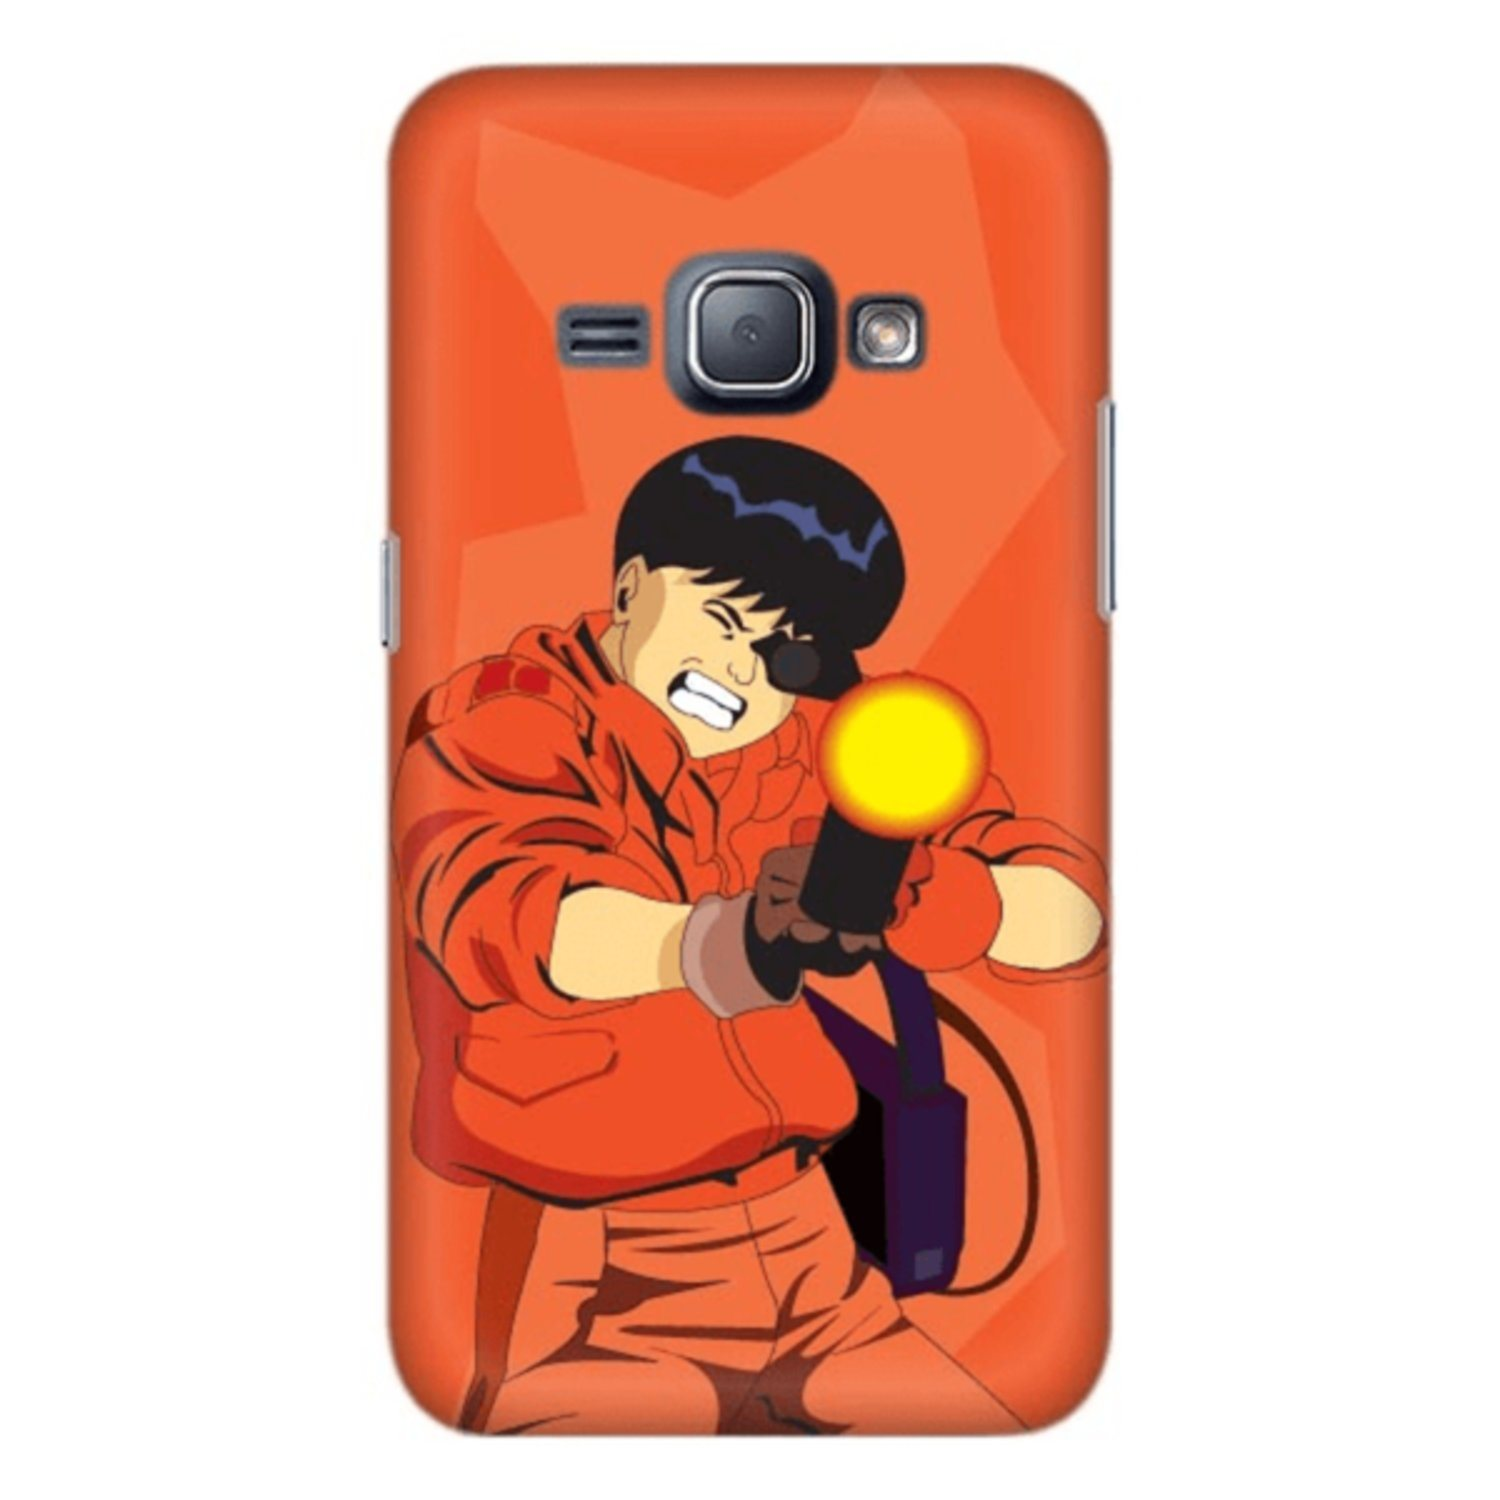 Samsung Galaxy J1 (2016) Skal Anime Shooter